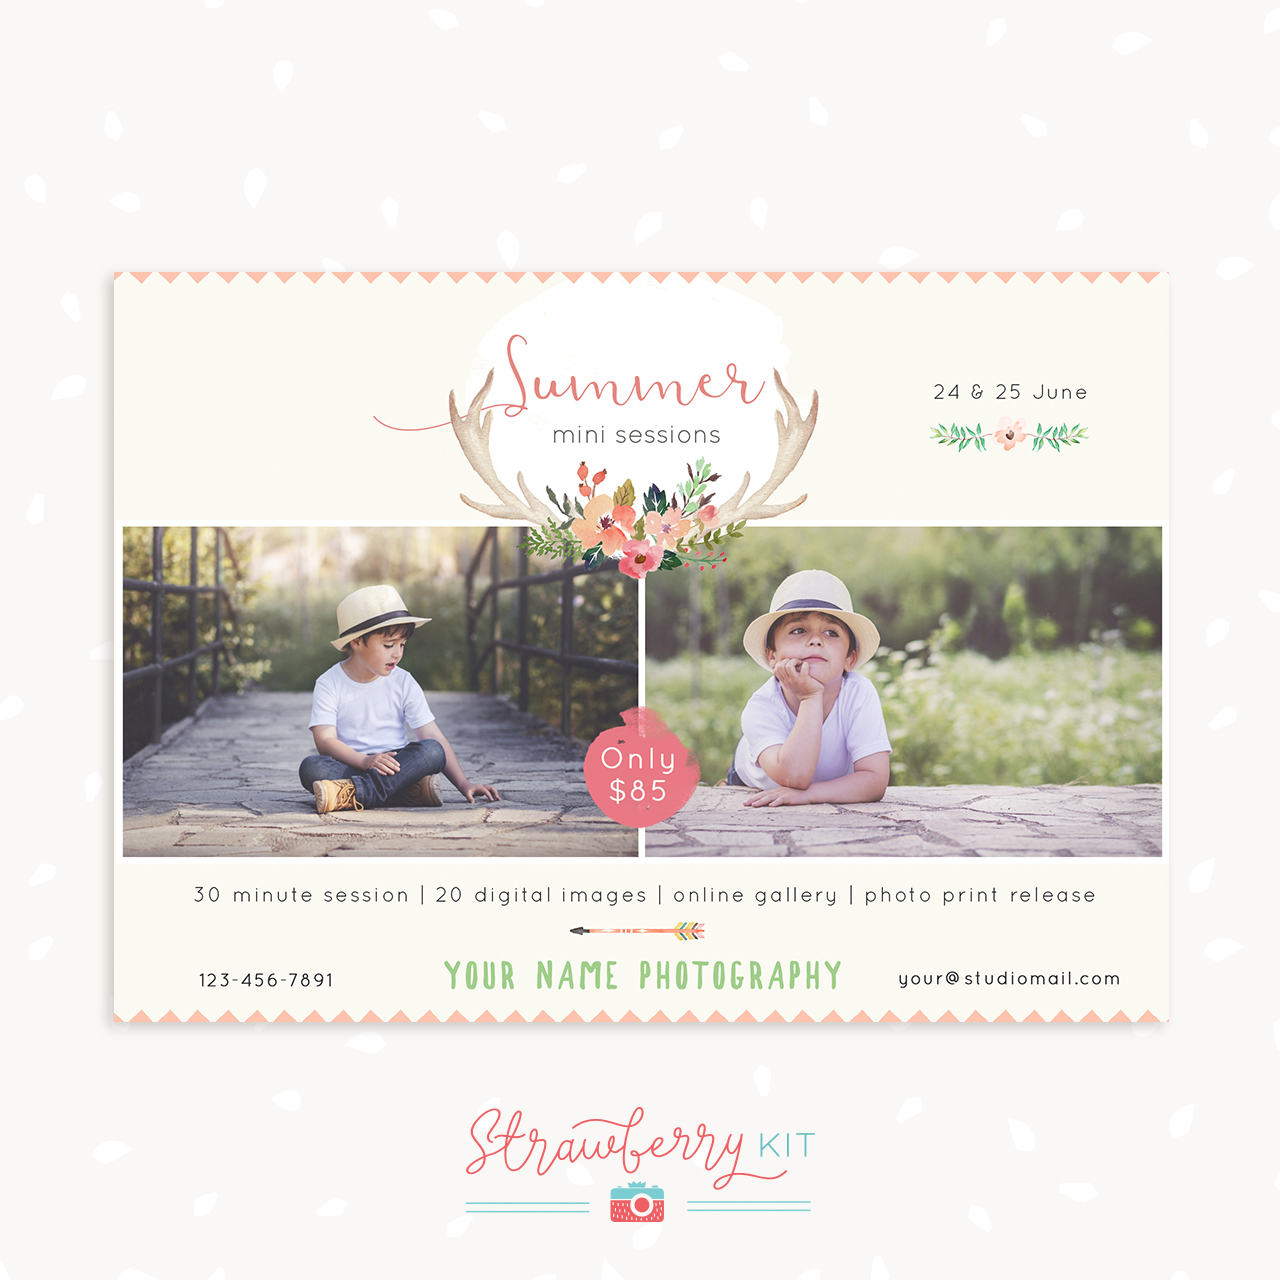 Tribal summer mini sessions template for photographers